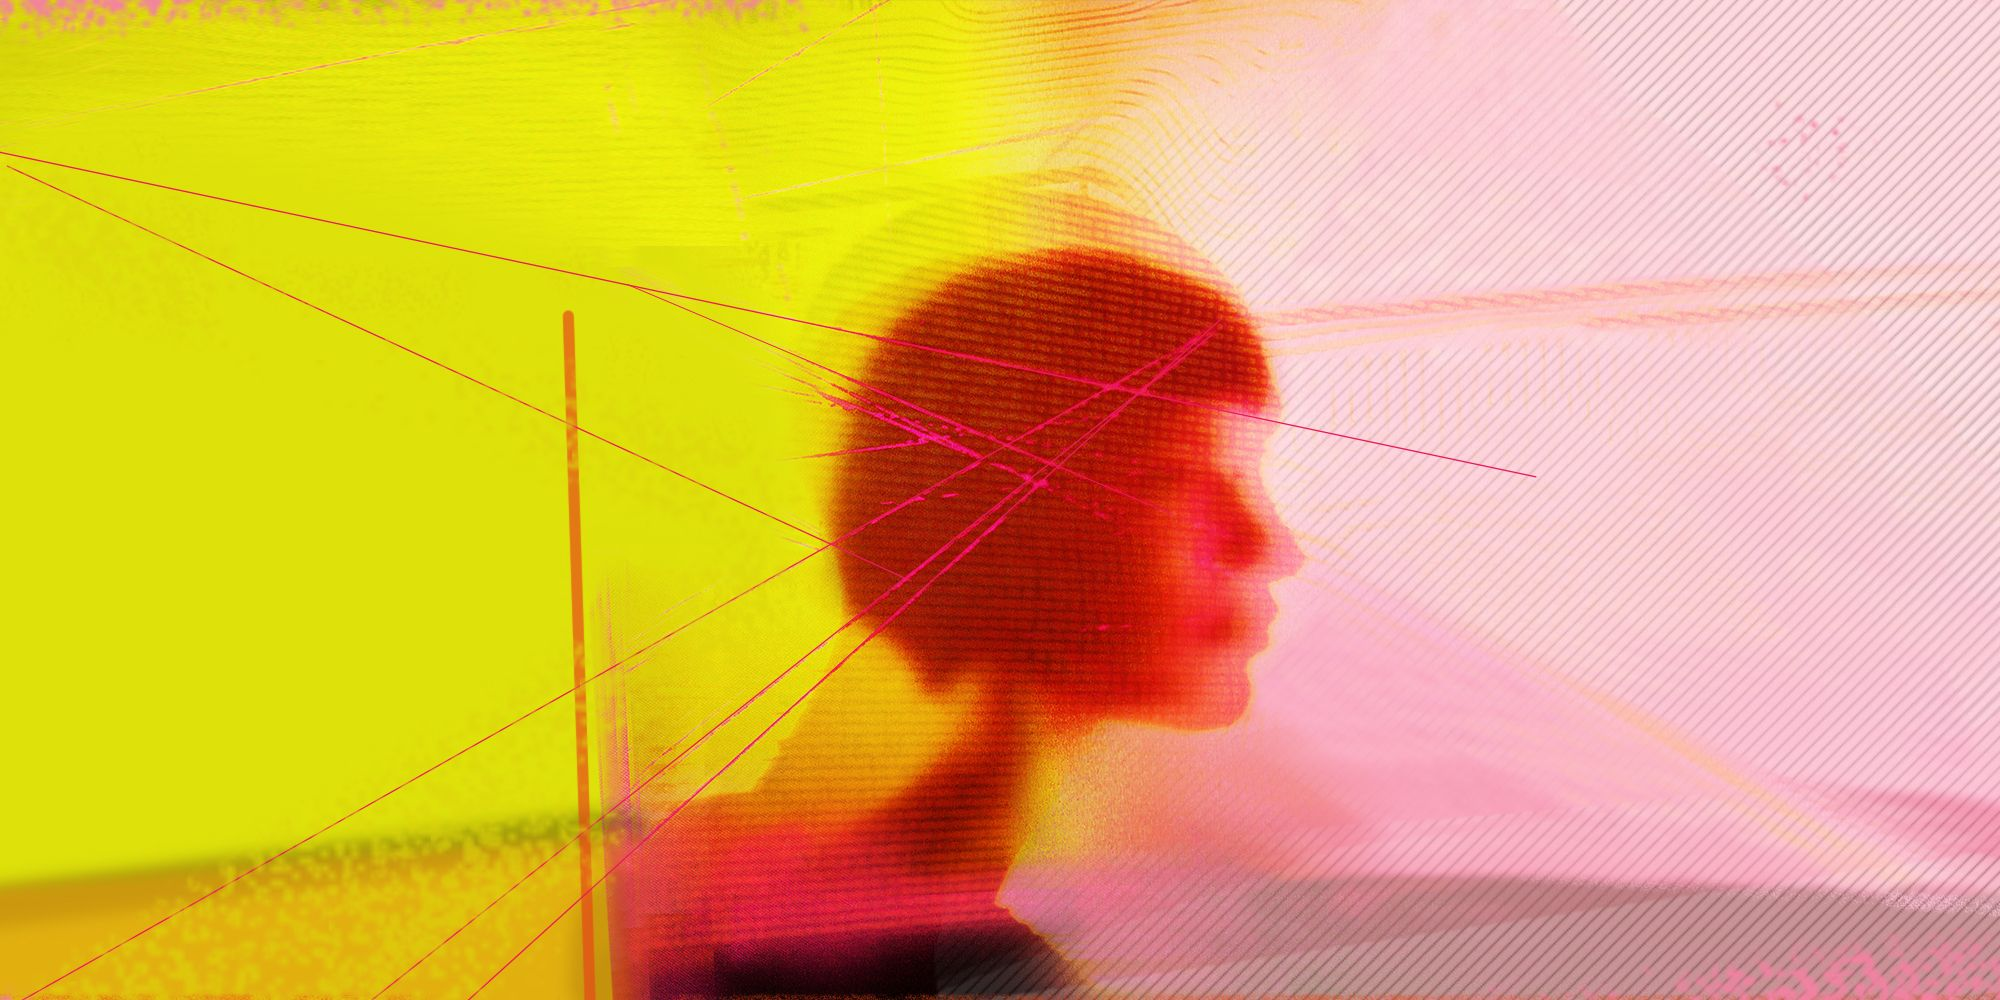 Women Are Micro-Dosing on LSD - Psychadelics and the Working Woman